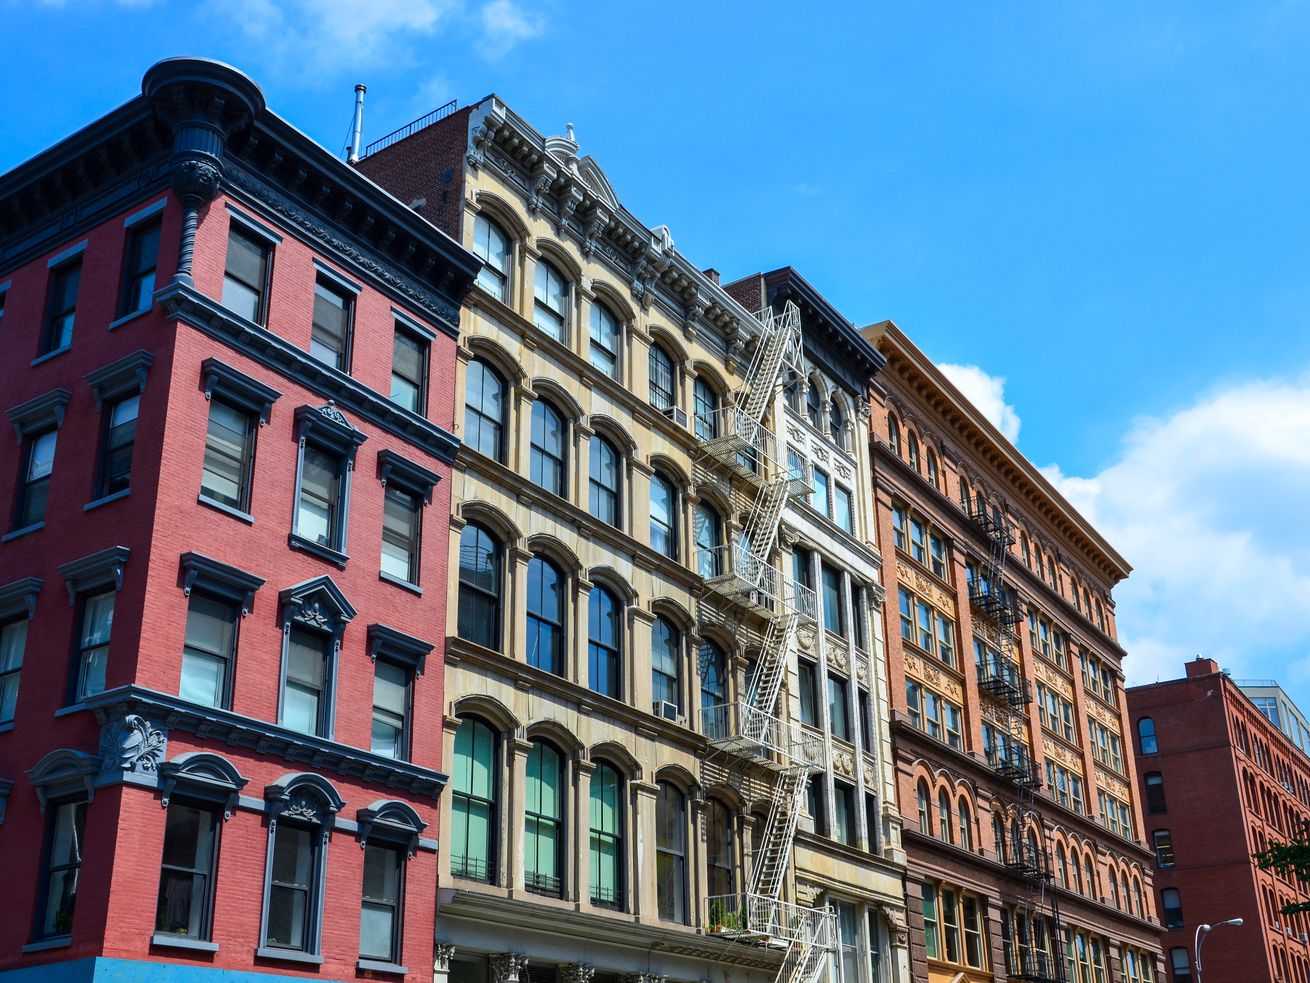 A block of brick-faced apartment buildings in New York City.